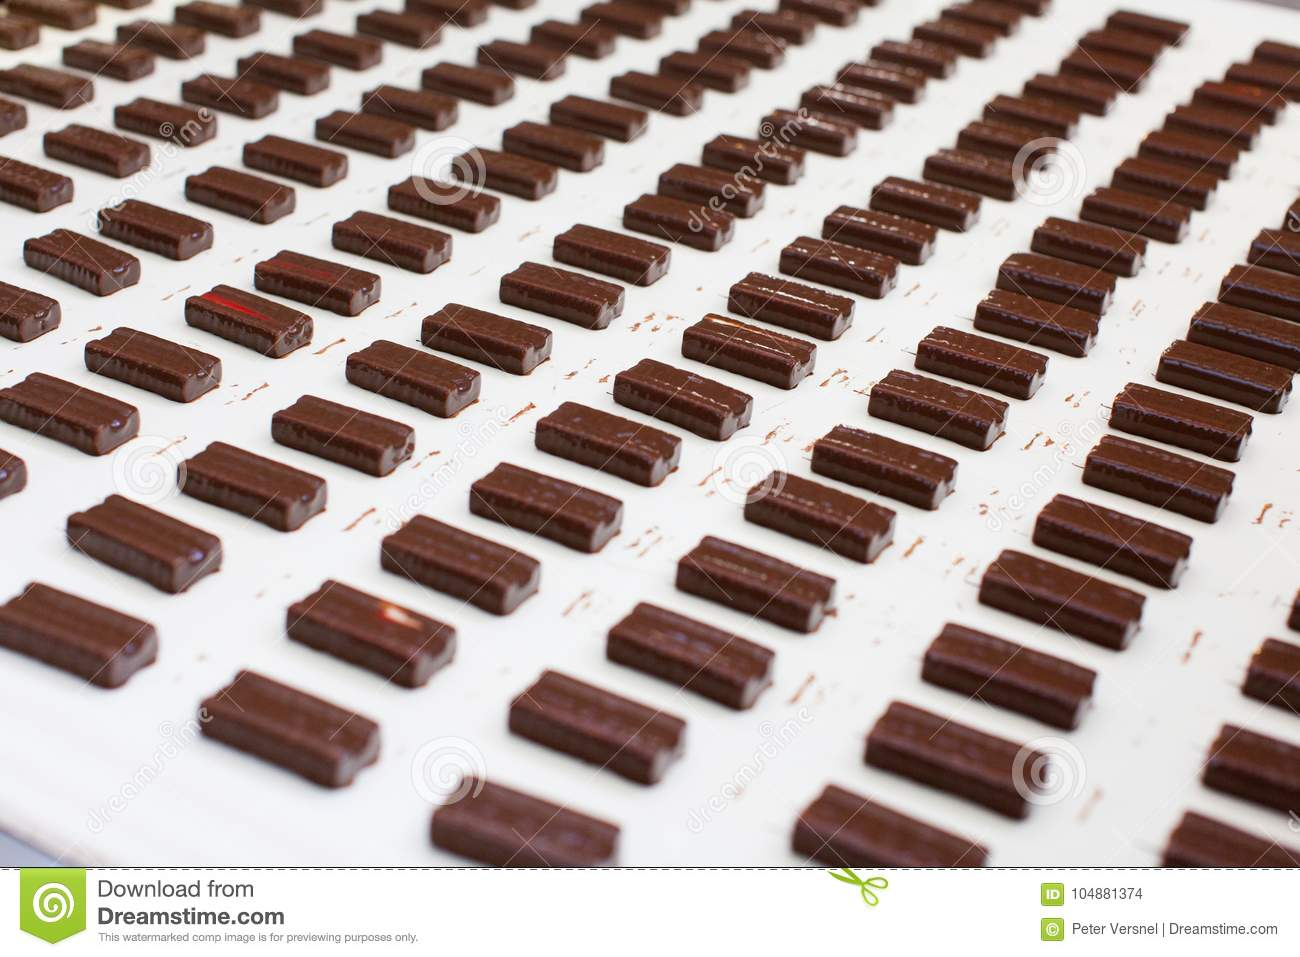 Chocolate covered candy at a candy factory.